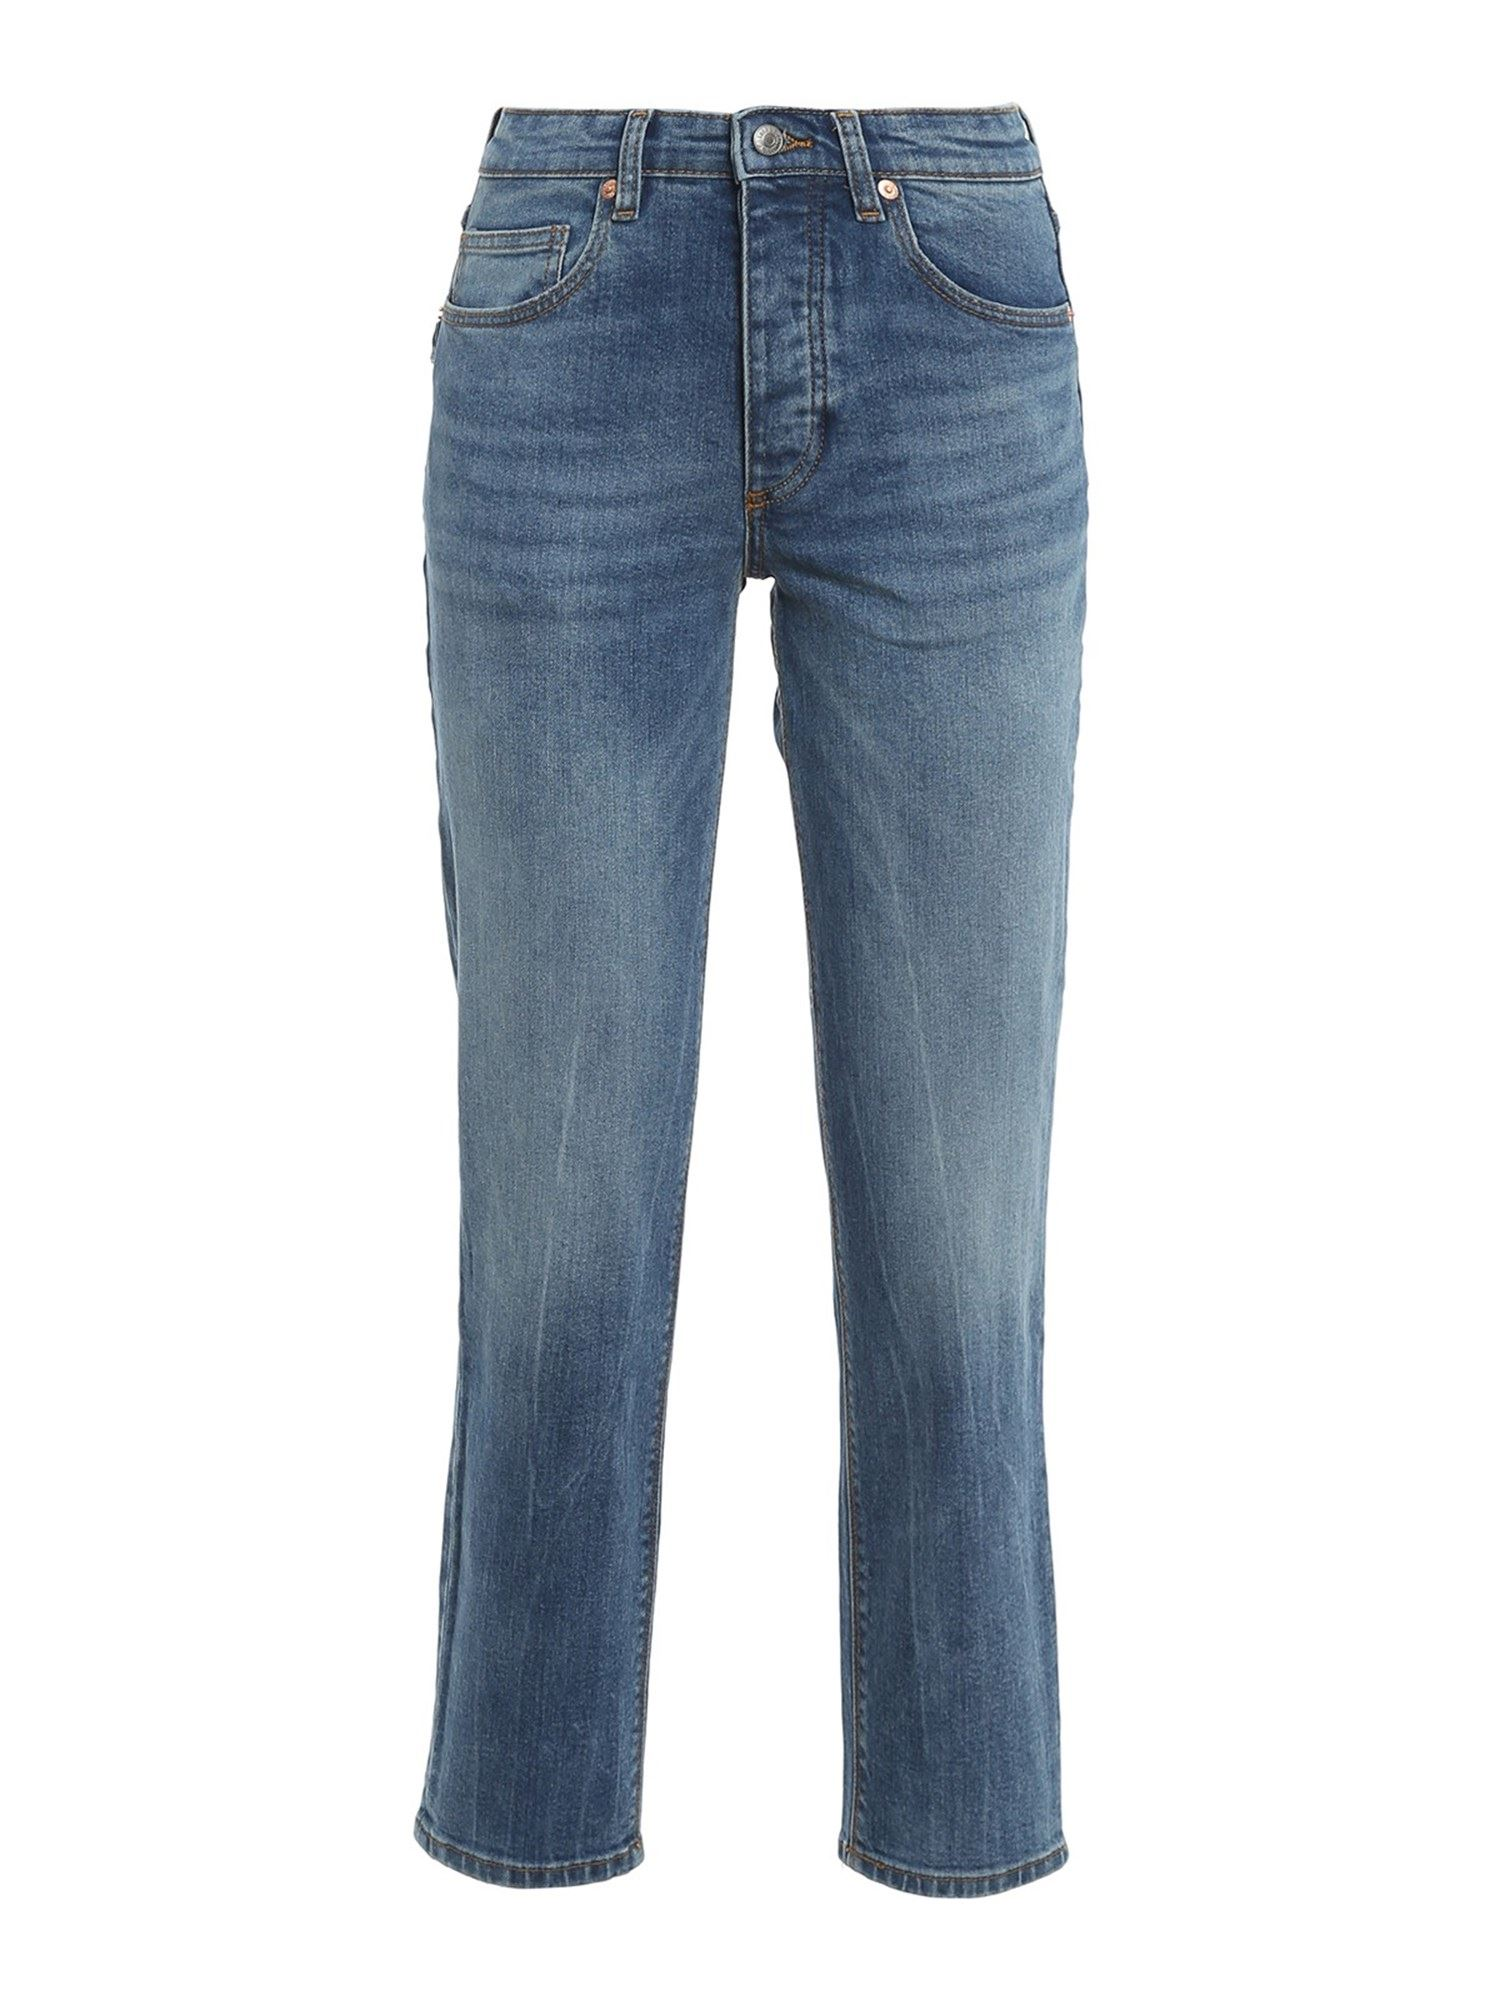 Zadig & Voltaire MAMMA JEANS IN BLUE